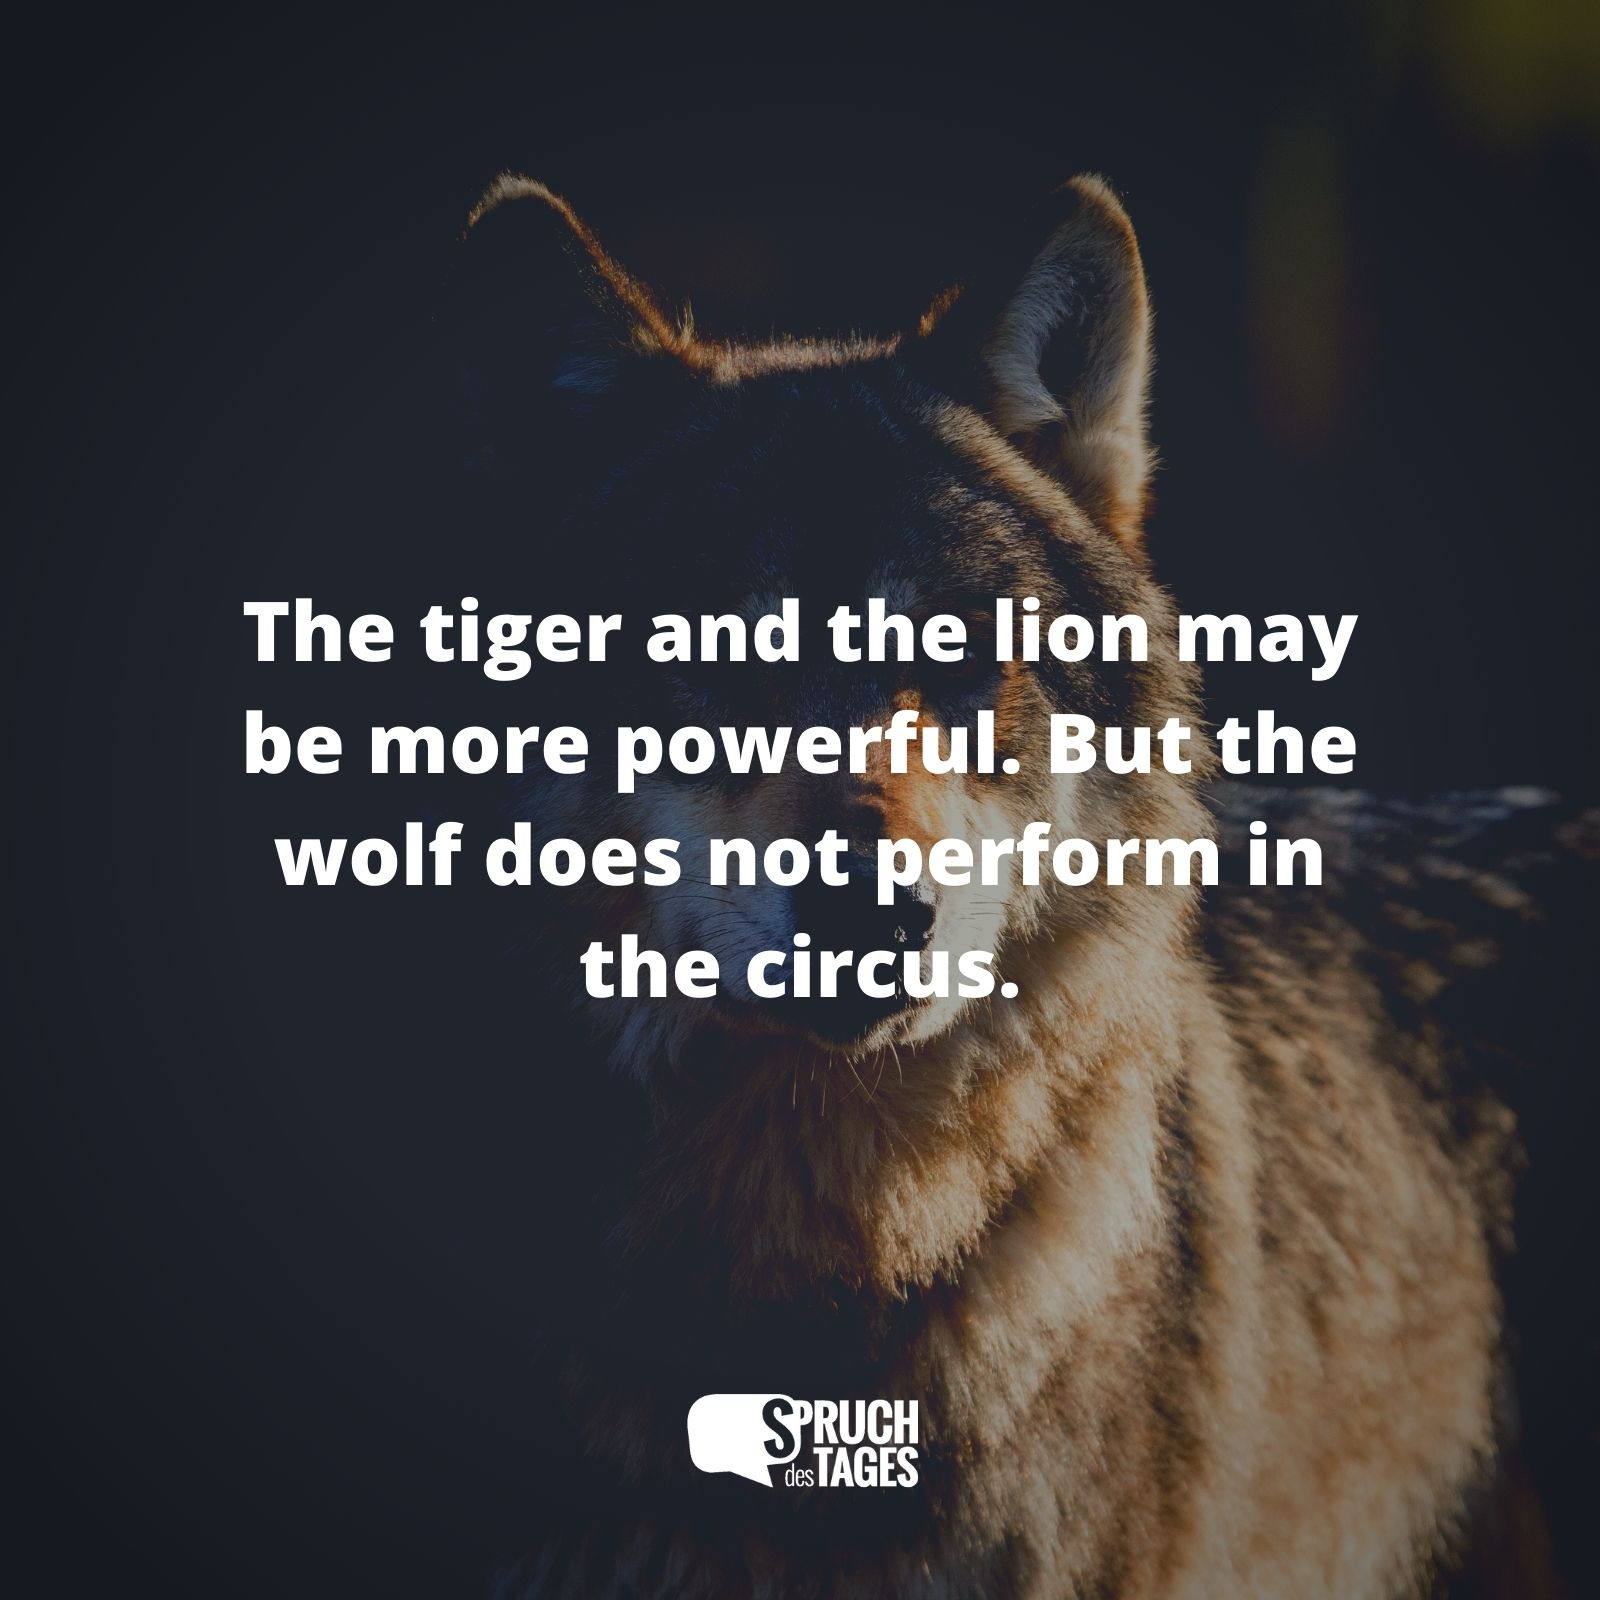 The tiger and the lion may be, more powerful. But the wolf does not perform in the circus.